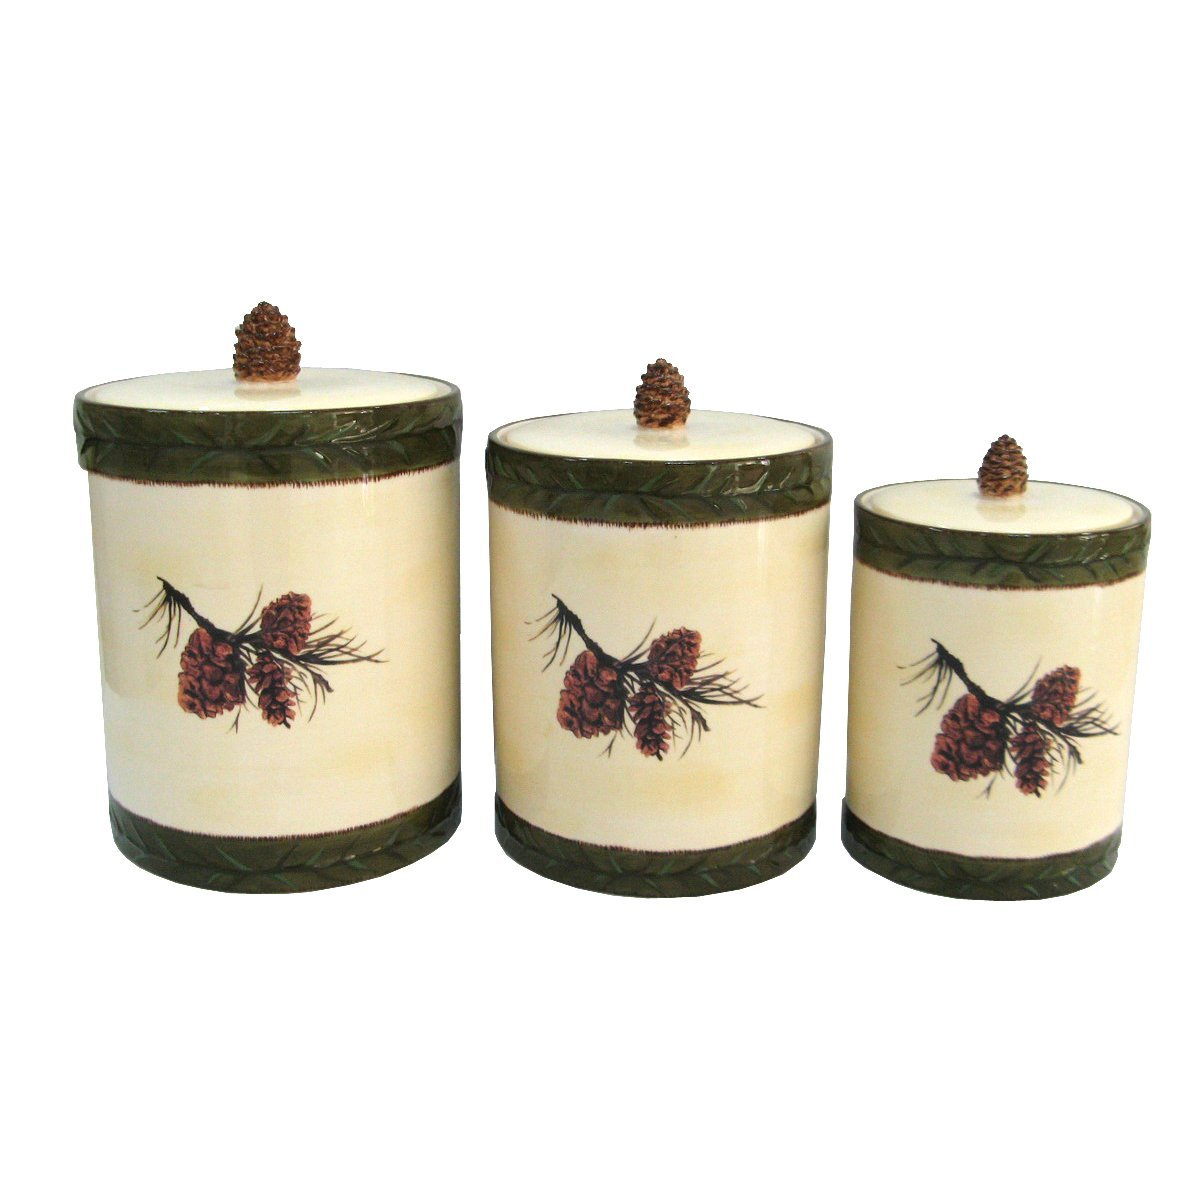 DI1800CS01 - 3 Piece Canister Set- Pine Cone